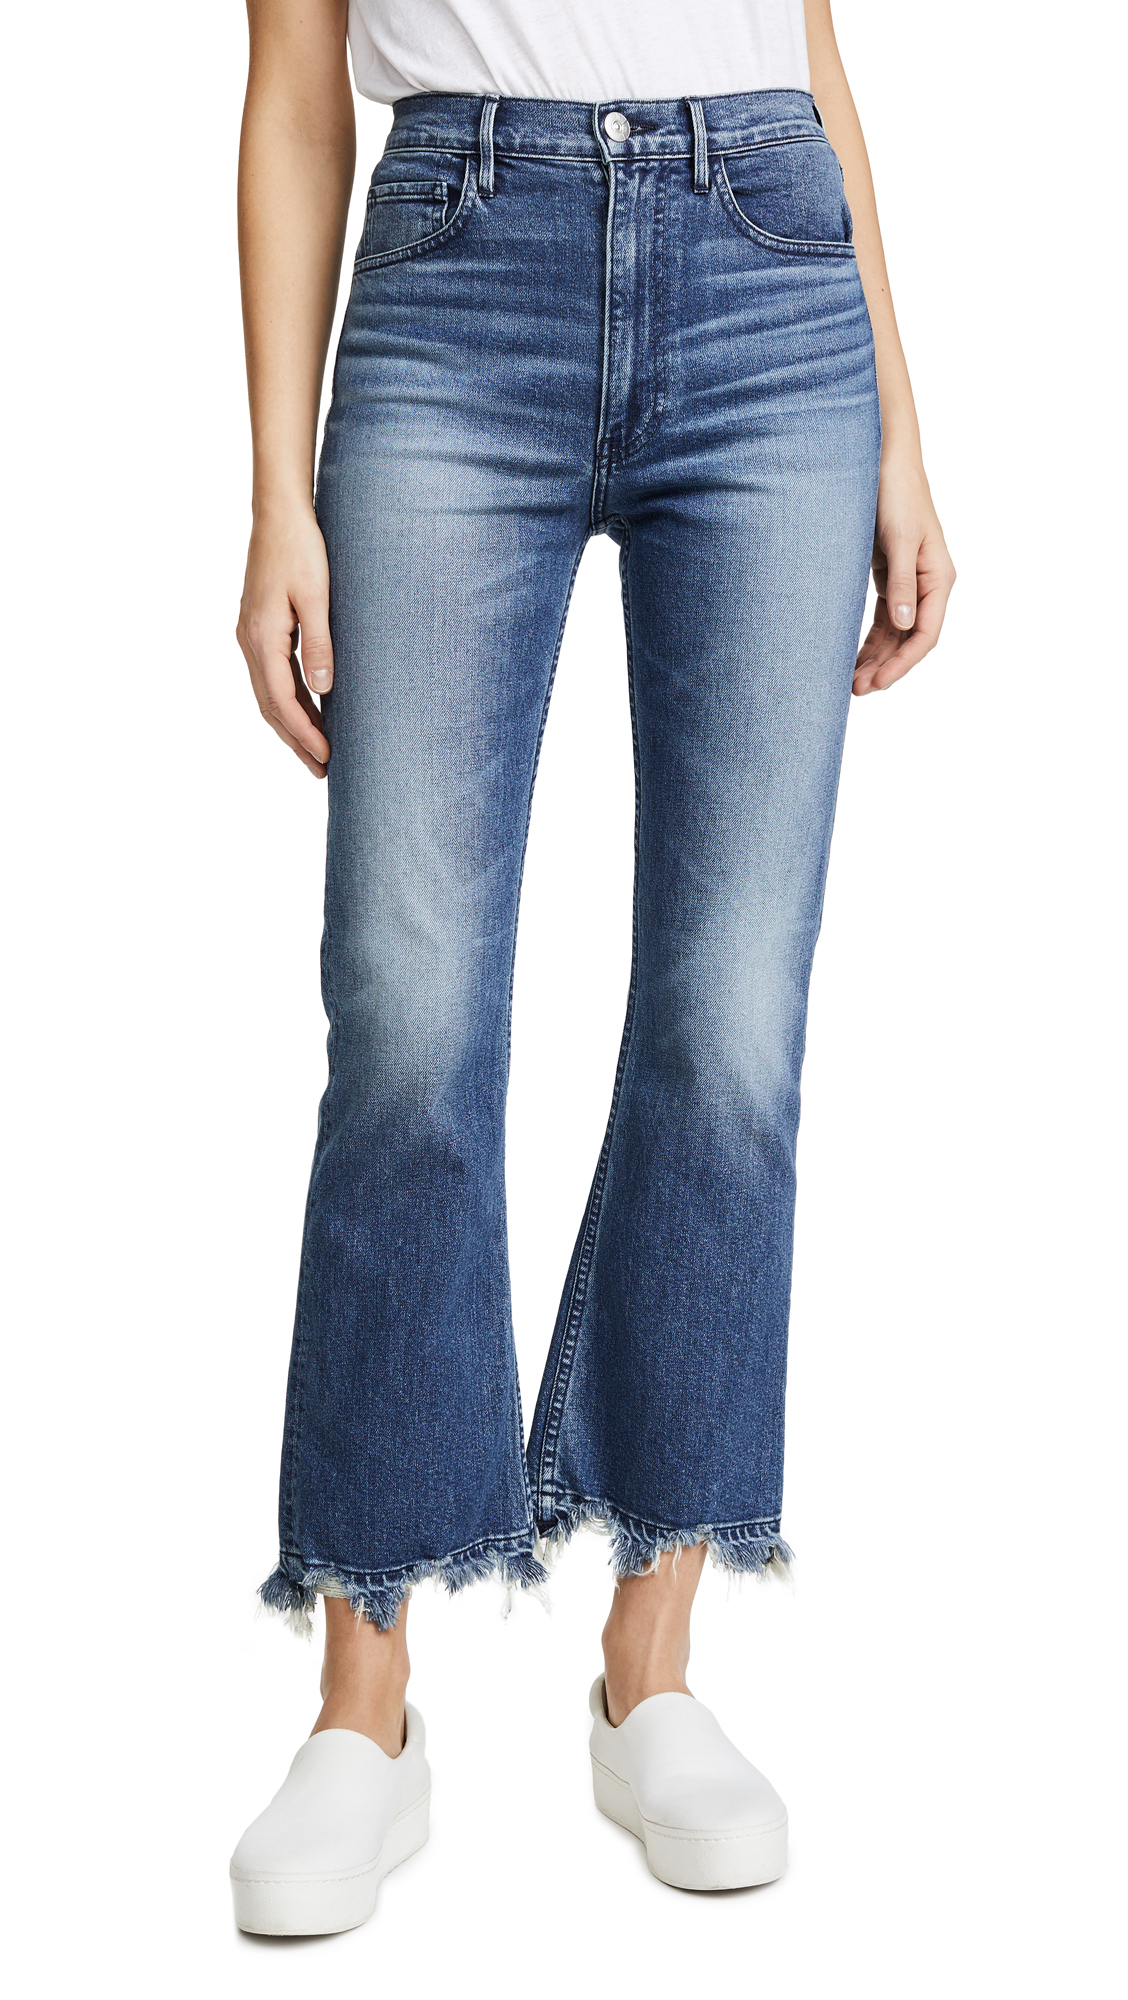 W5 Empire Crop Distressed Cropped High-Rise Bootcut Jeans, Deco Wash